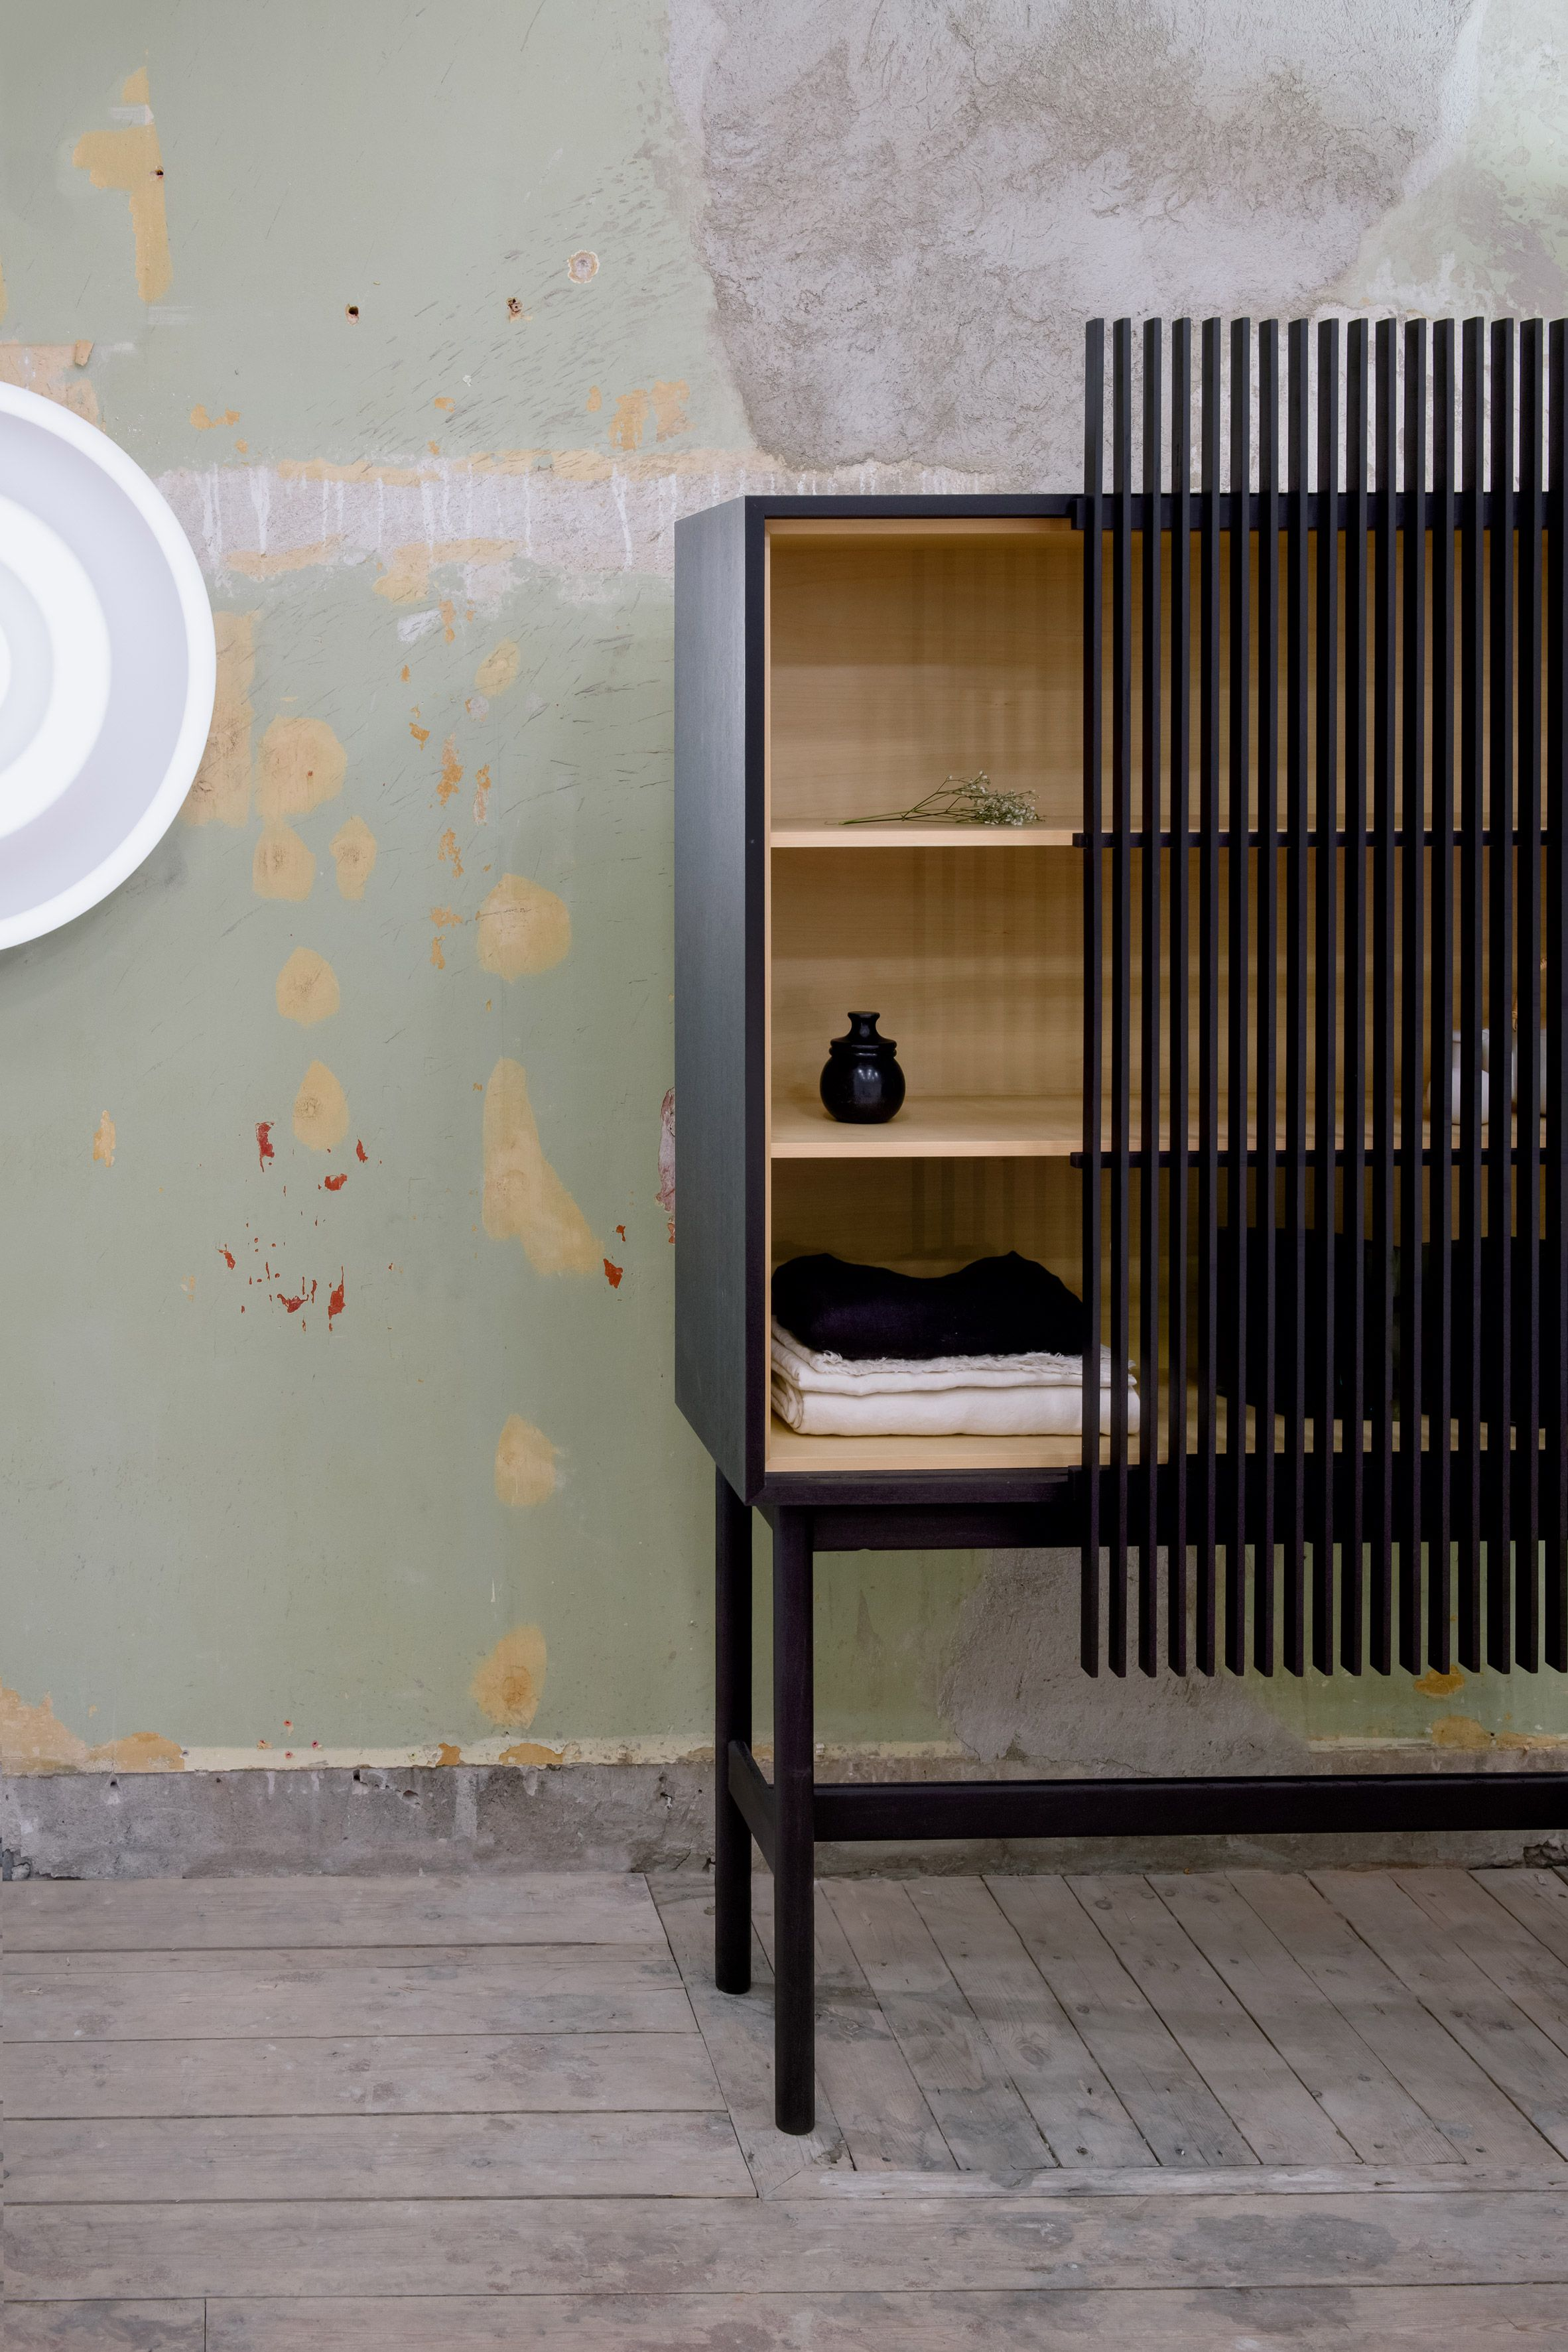 Building japanese furniture Bamboo New Japanese Furniture Producer Ariake Showcased Its Products In Dilapidated Former Embassy Building During Stockholm Design Week 2018 Pinterest New Japanese Furniture Producer Ariake Showcased Its Products In